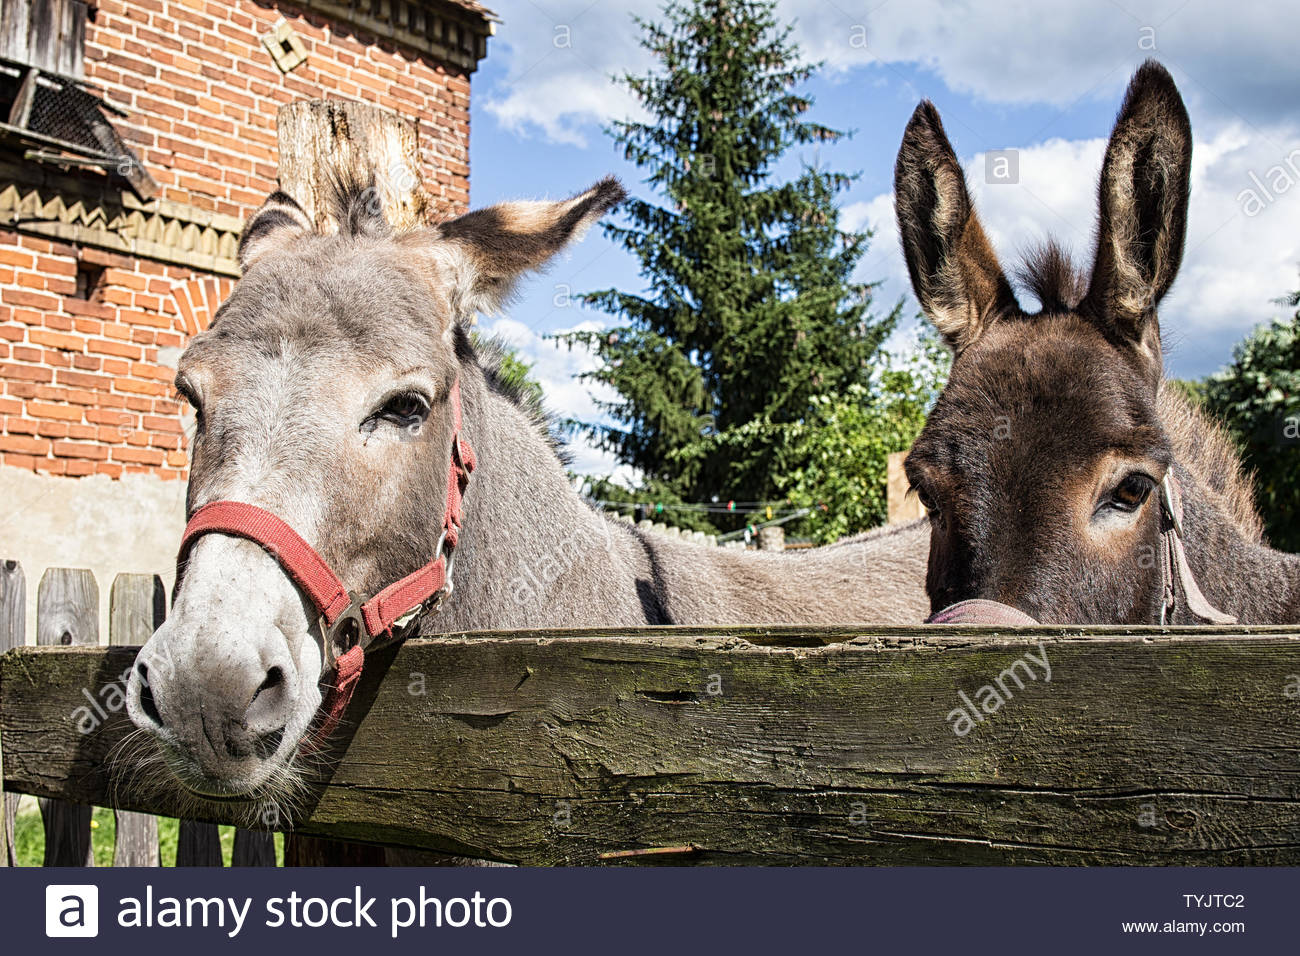 Portrait of a donkey couple at a barnyard Stock Photo